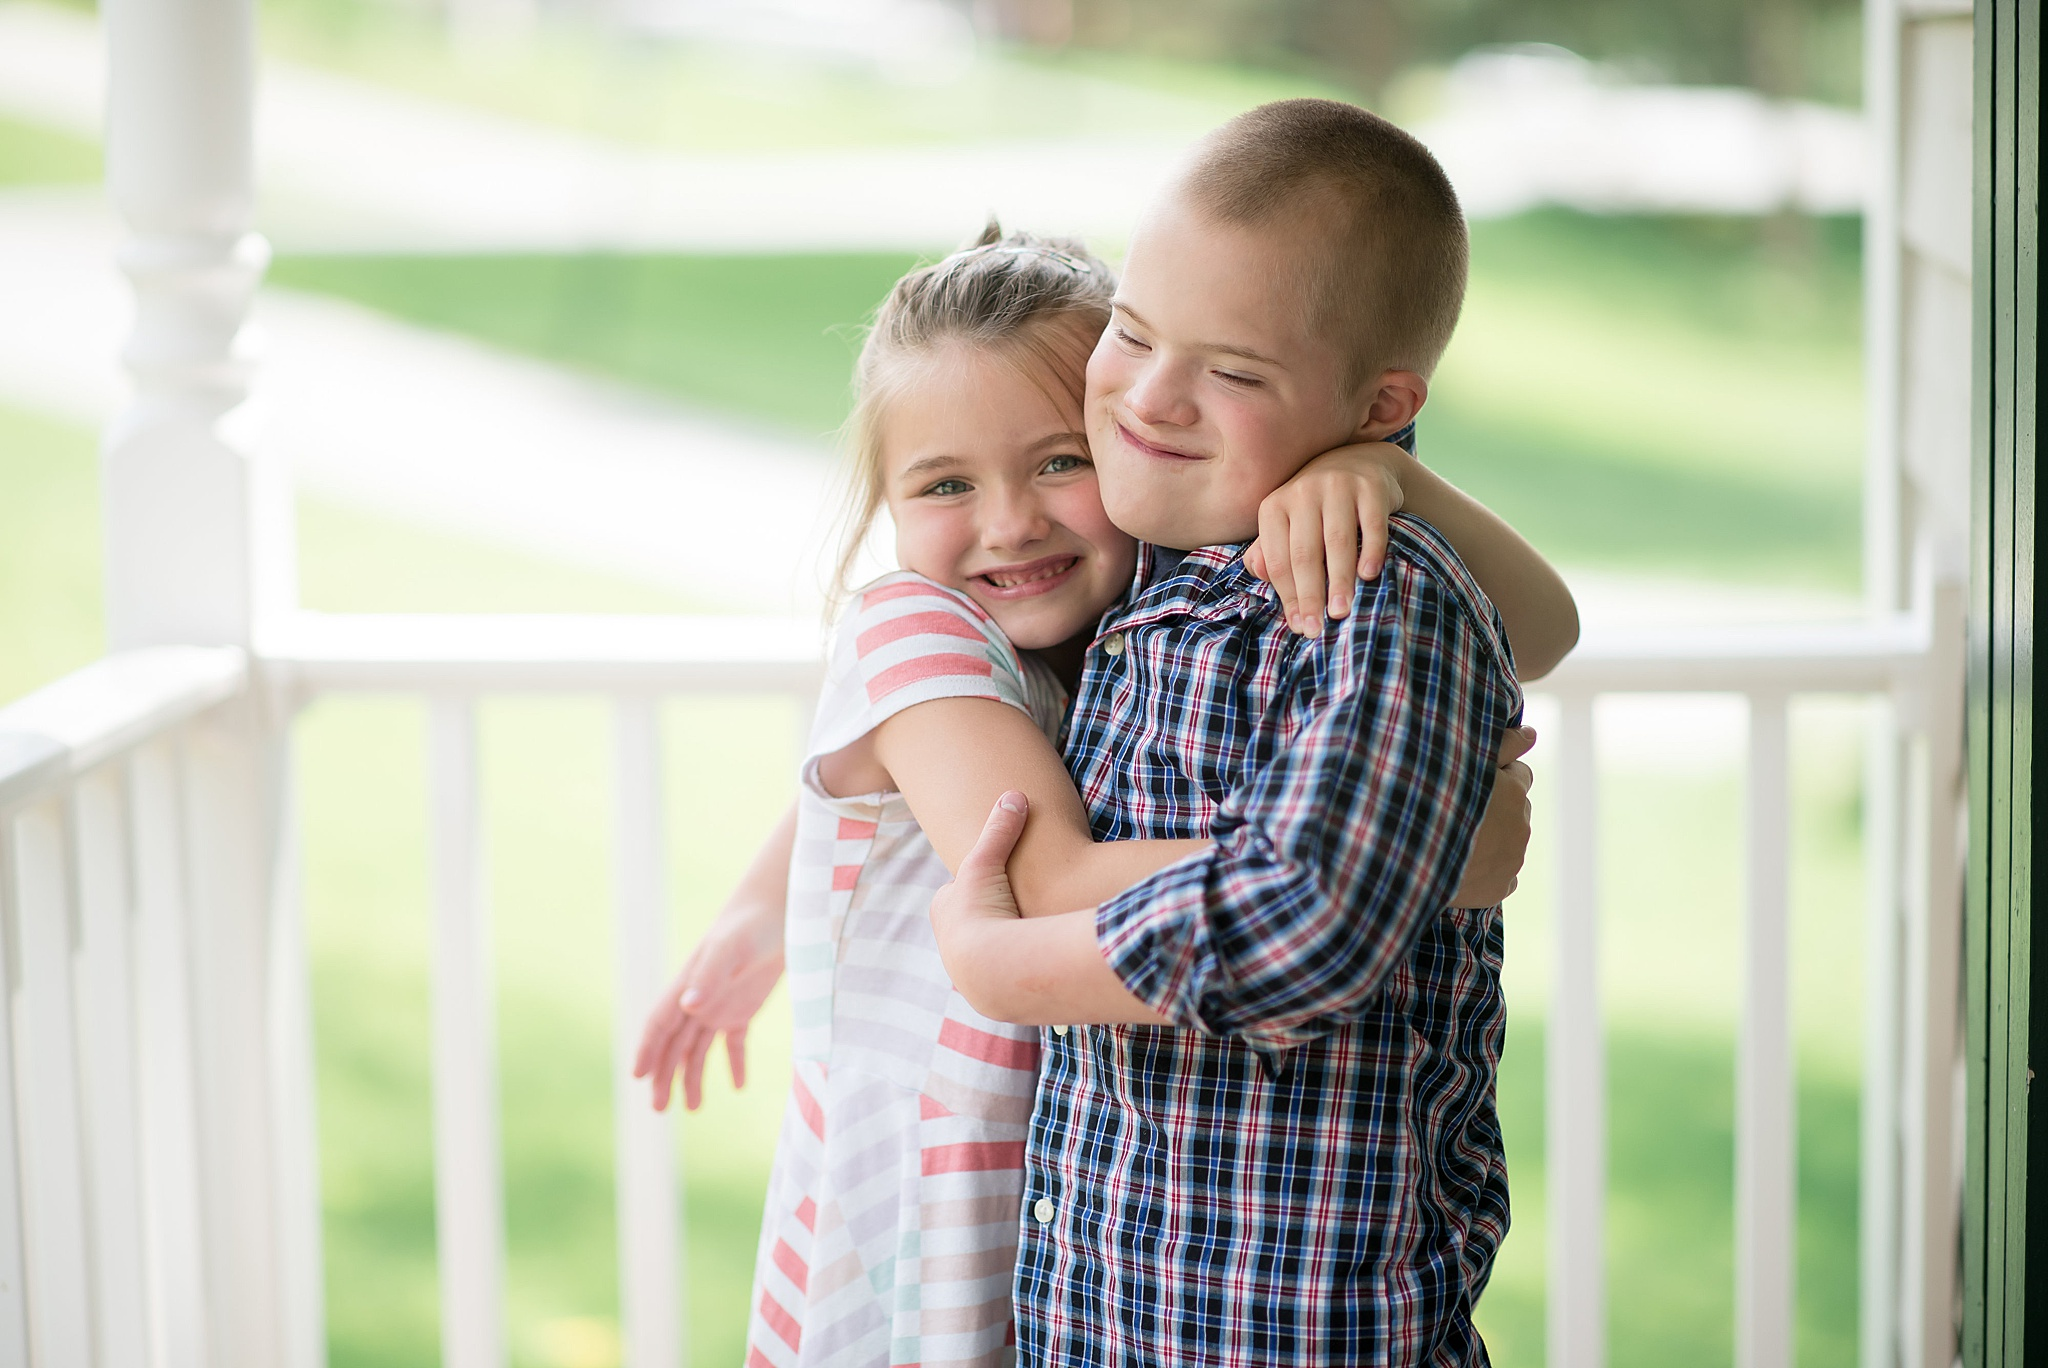 Wendy Zook Photography | Frederick Maryland photographer, Down syndrome awareness, DS awareness, talking about Down Syndrome